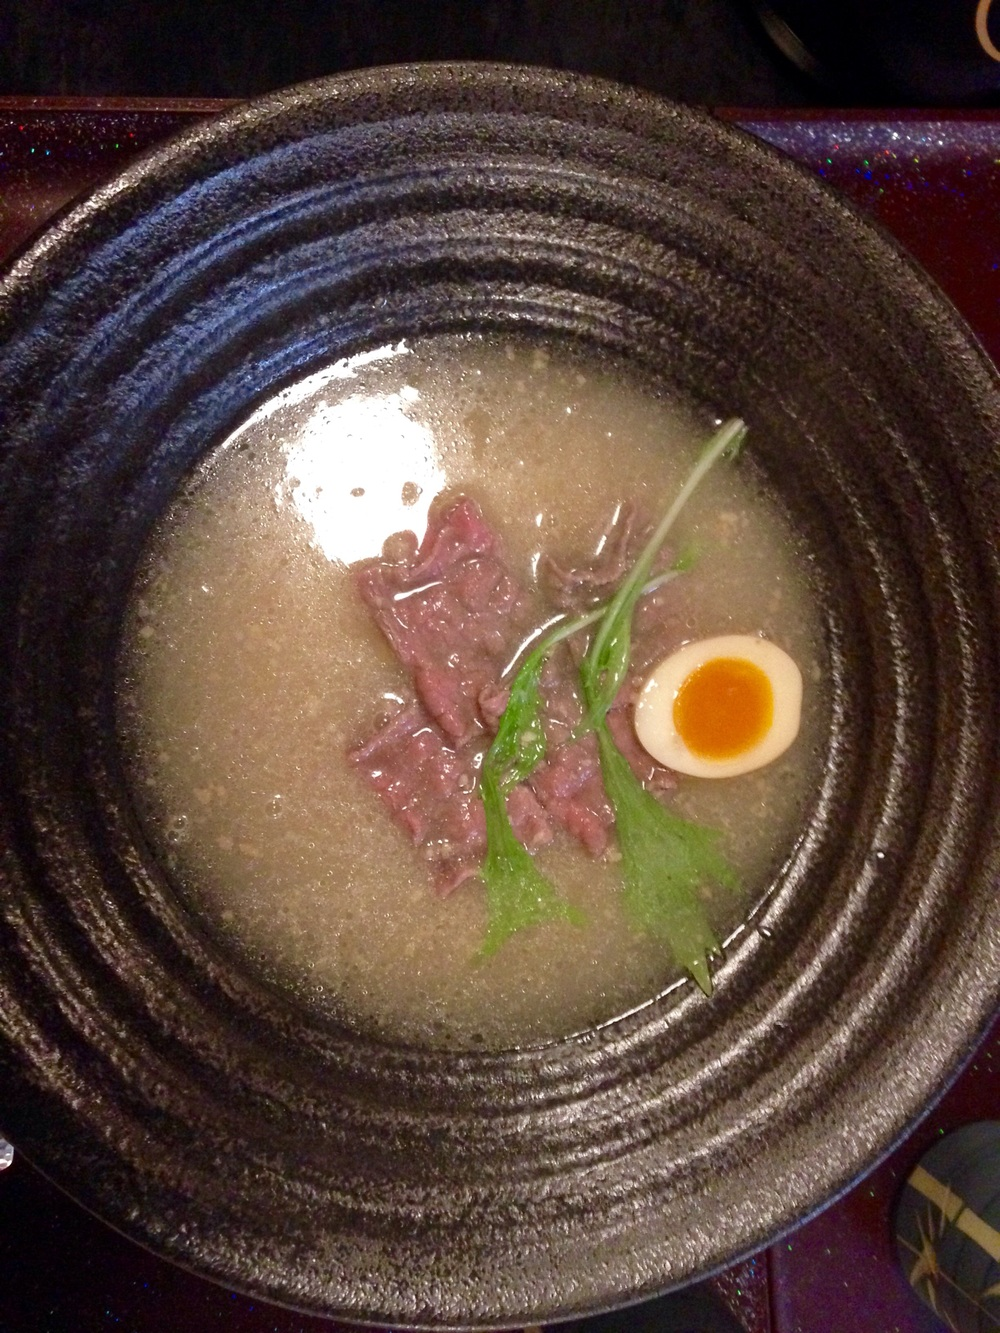 Kobe beef cooking in ramen broth.